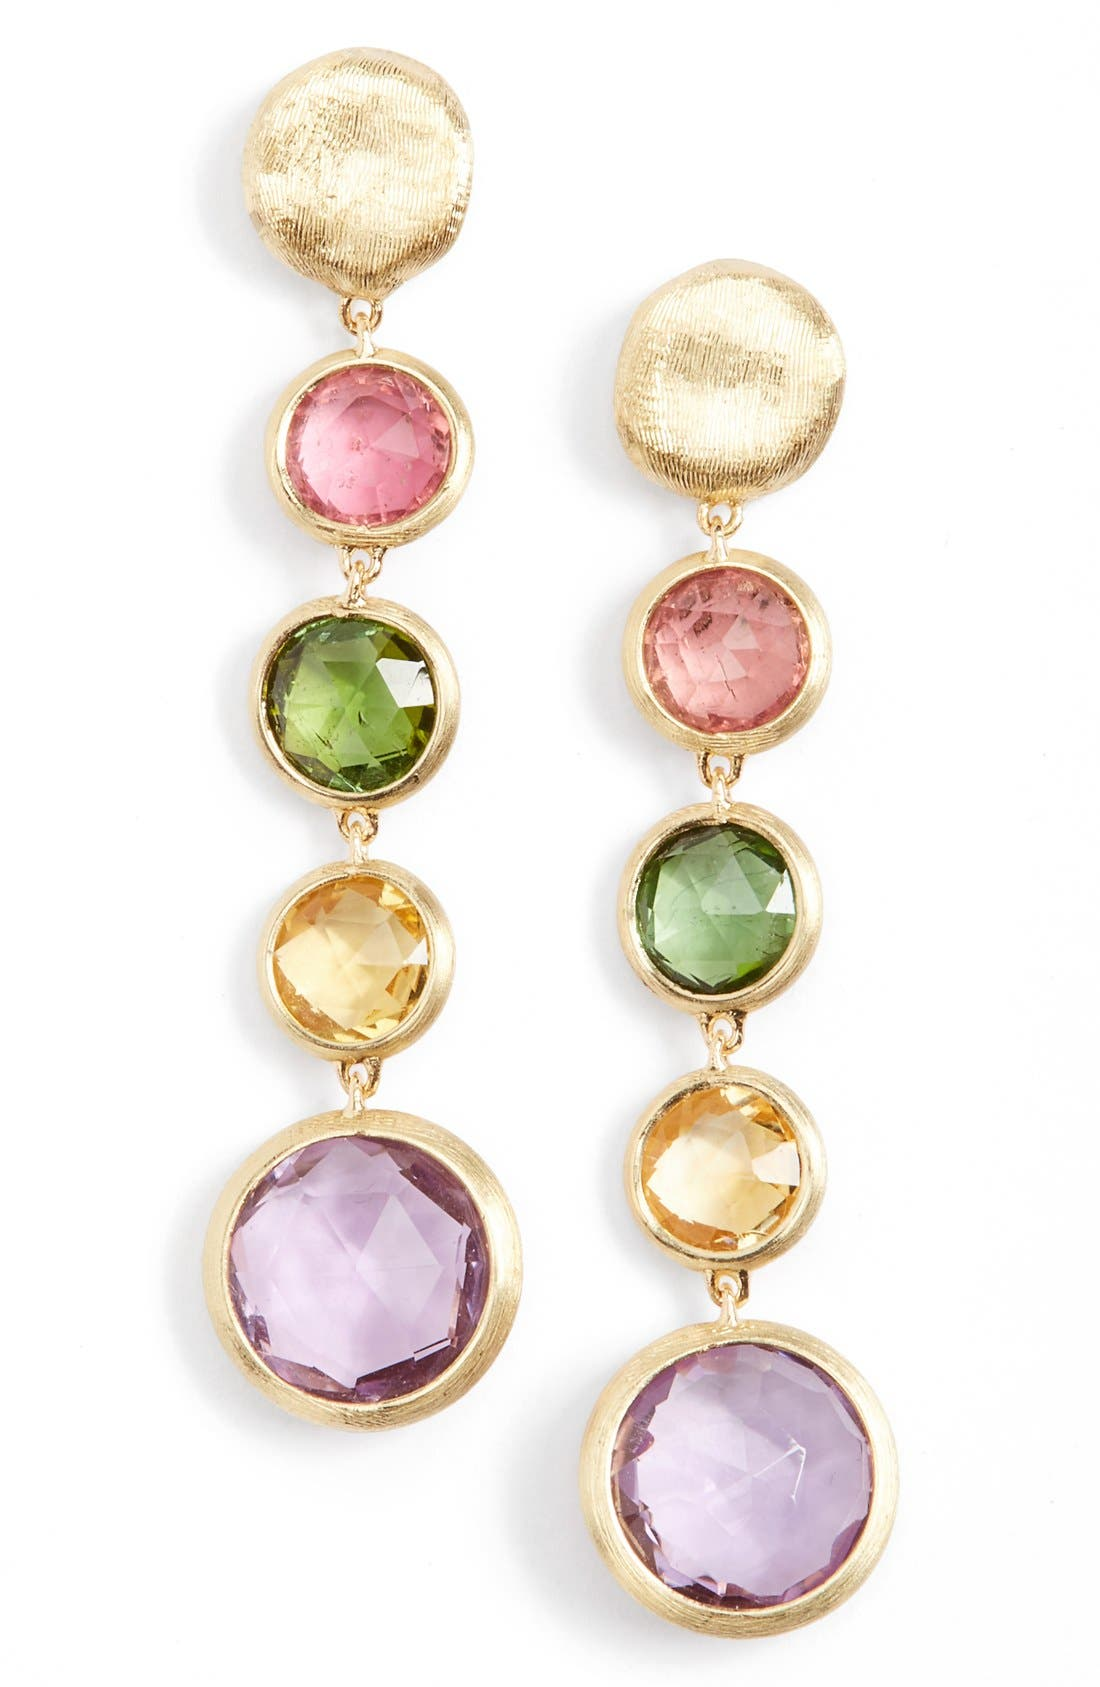 Marco Bicego 'Jaipur' Semiprecious Stone Linear Earrings